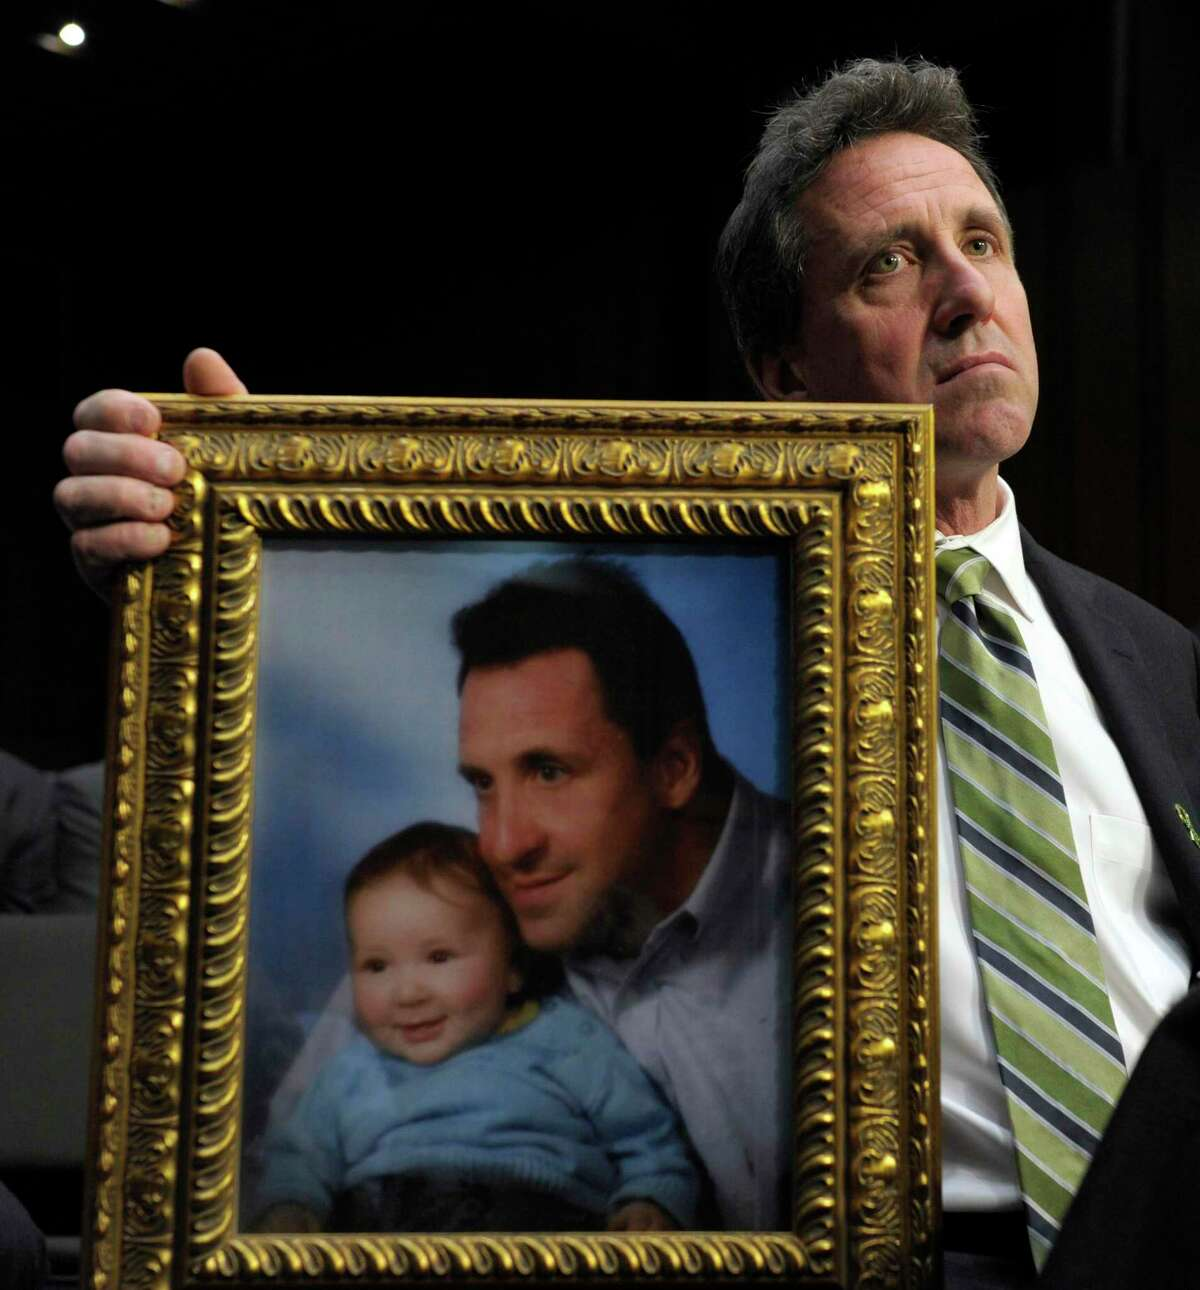 Neil Heslin, the father of a six-year-old boy who was slain in the Sandy Hook massacre in Newtown, Conn., on Dec. 14, 2012 holds a picture of himself with his son Jesse and wipes his eye while testifying on Capitol Hill in Washington, D.C. Heslin has won a defamation lawsuit against Alex Jones.